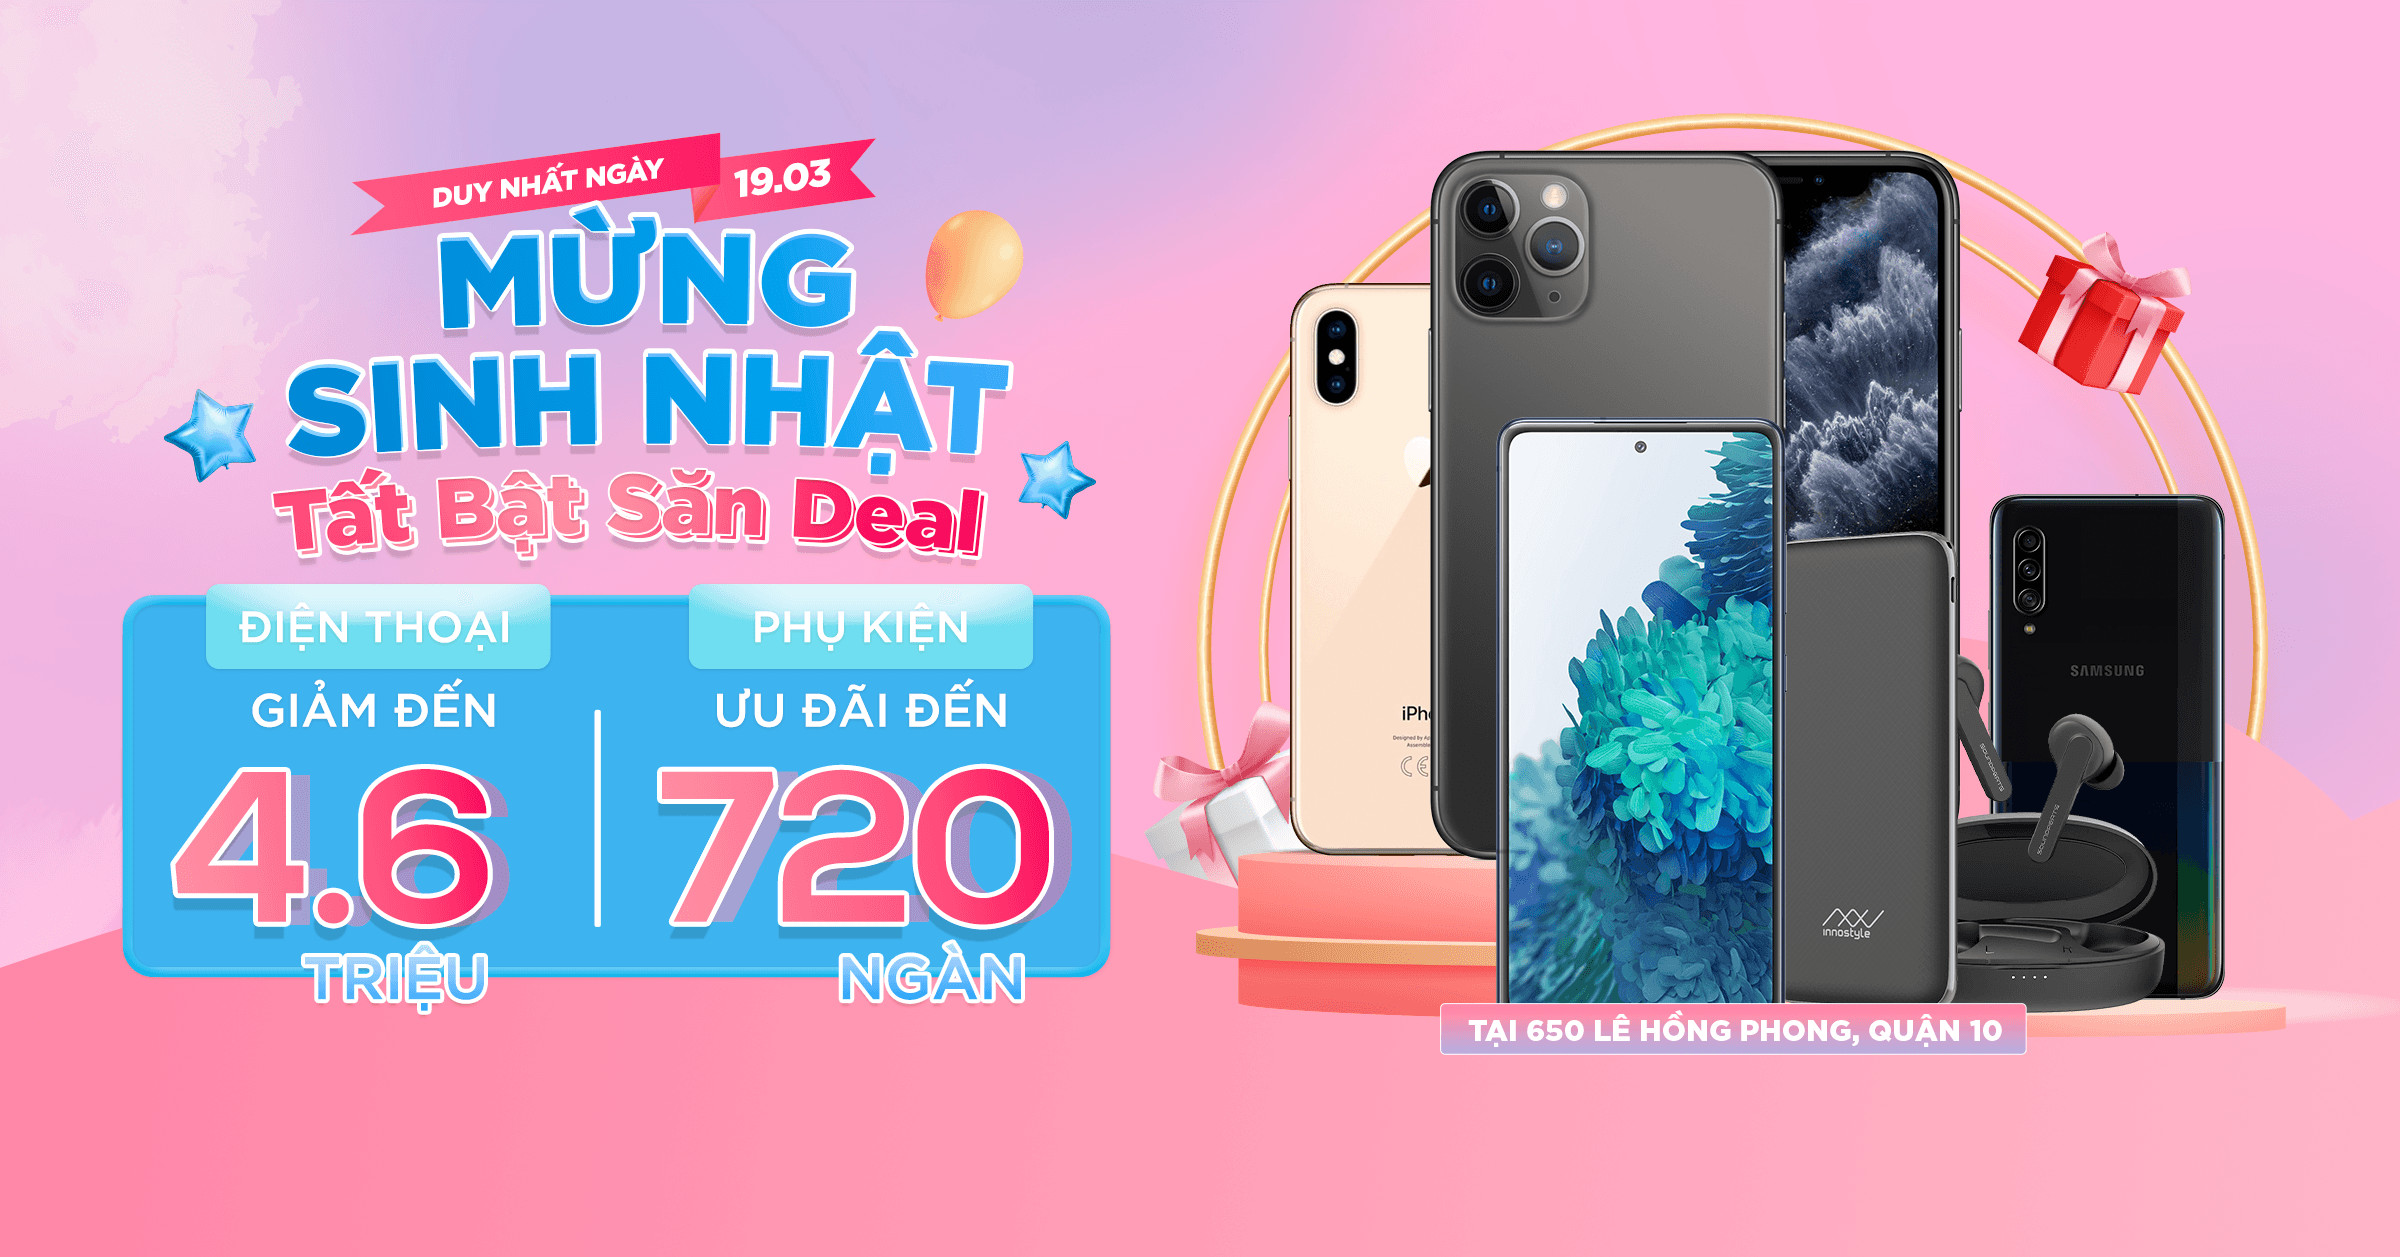 iPhone 12 Pro Max, Xs, Galaxy S10 Plus down to 5 million at XTmobile